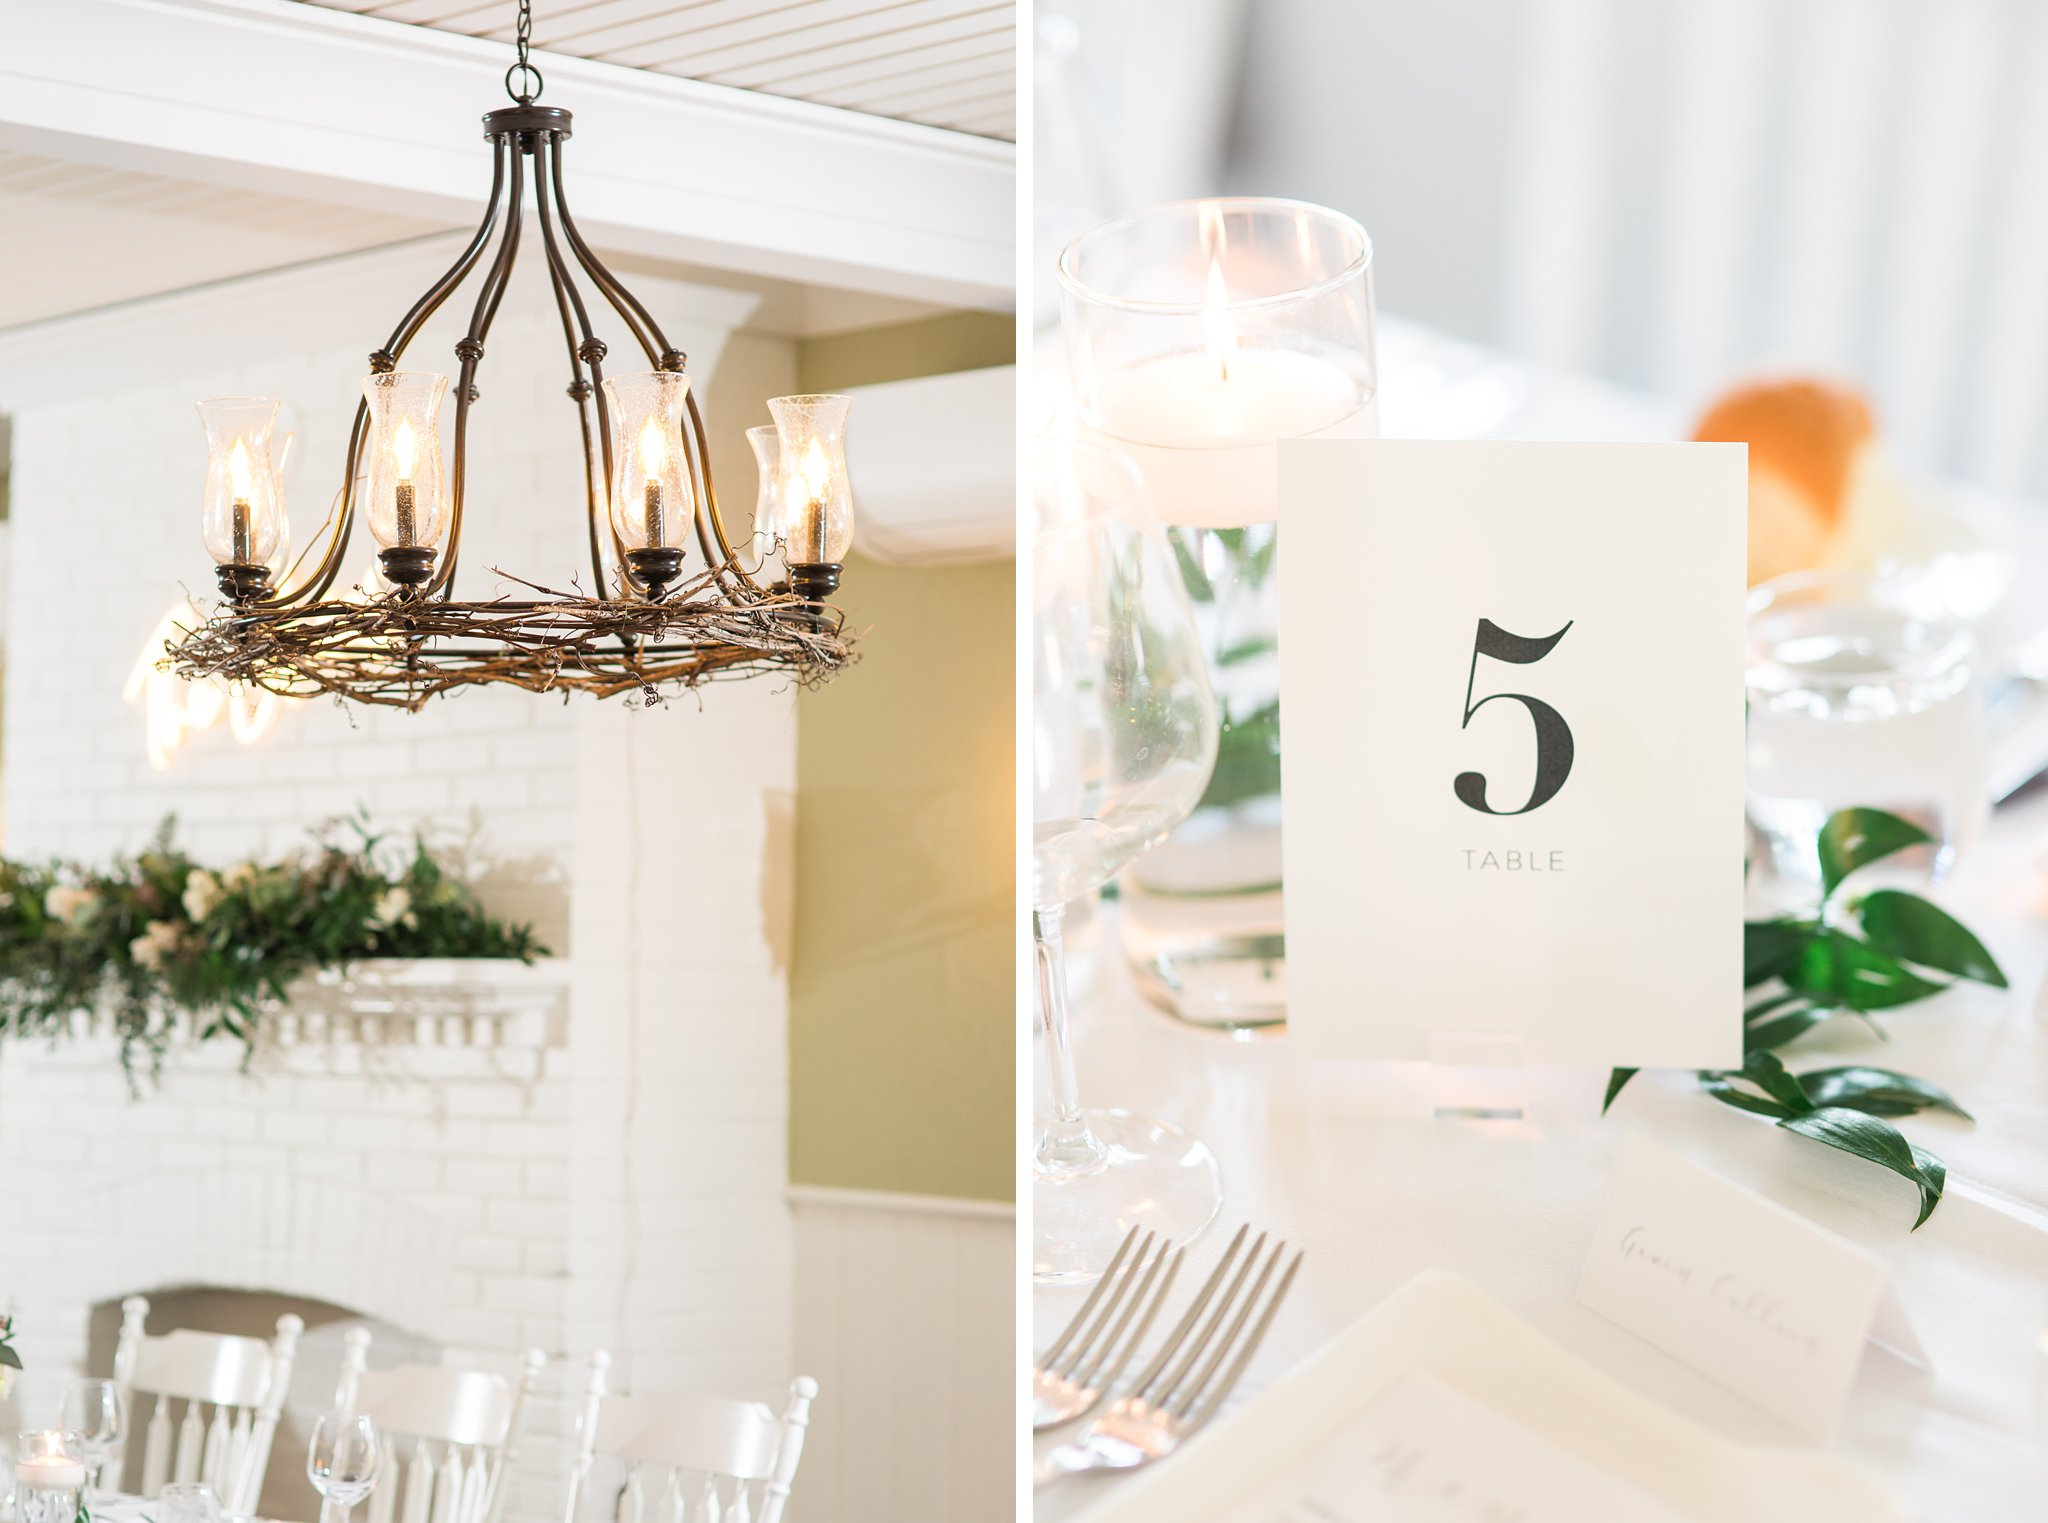 Reception details in the dining room at the Opinicon Wedding by Amy Pinder Photography